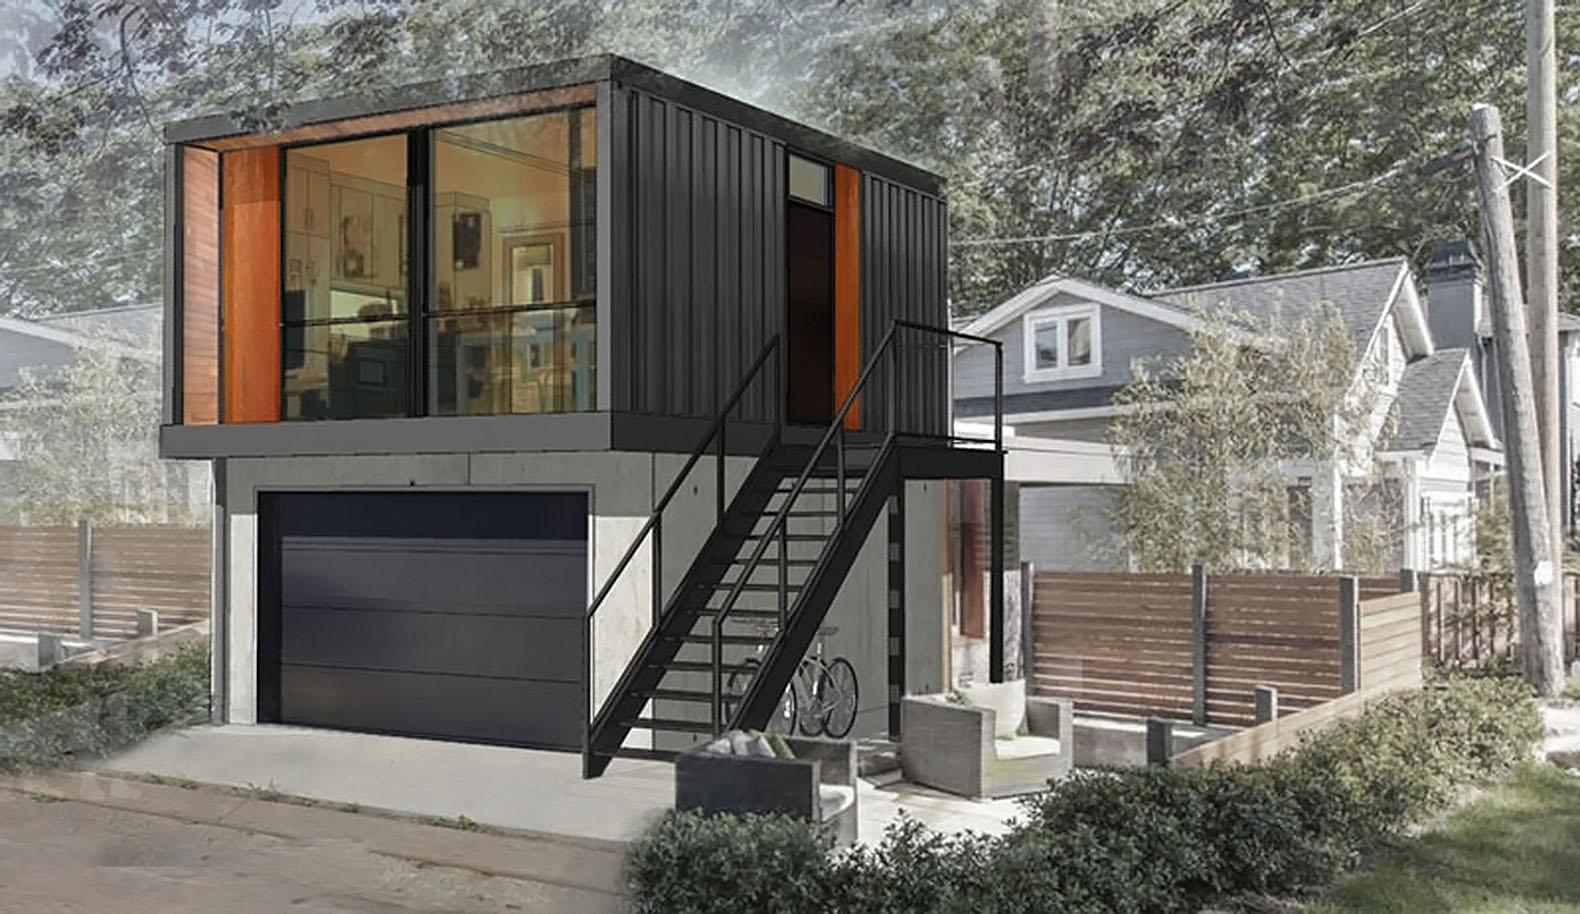 Superieur Use Unusual Small Prefab Homes Design From Used Container Above Black  Garage Door